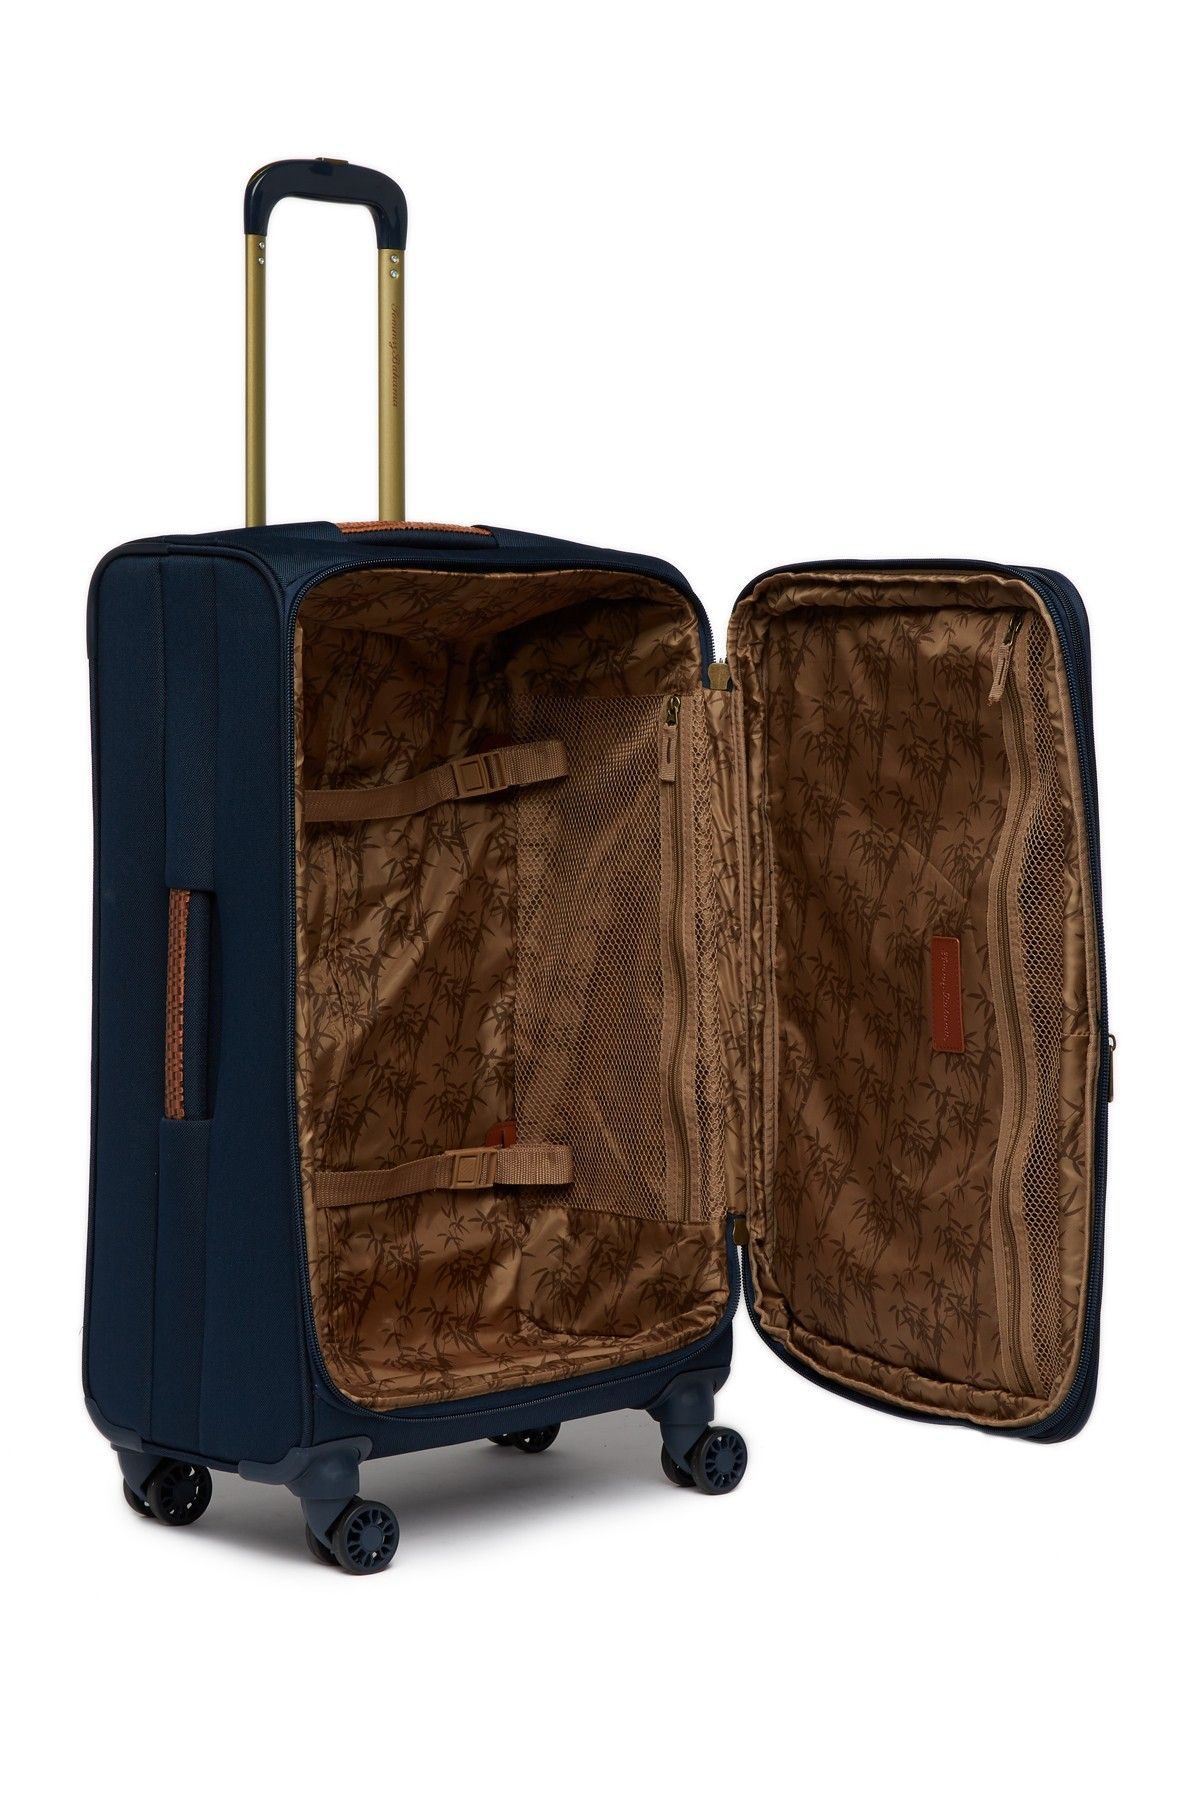 0b745e5777 Mojito Twist 4-Piece Expandable Spinner Luggage Set by Tommy Bahama on   nordstrom rack